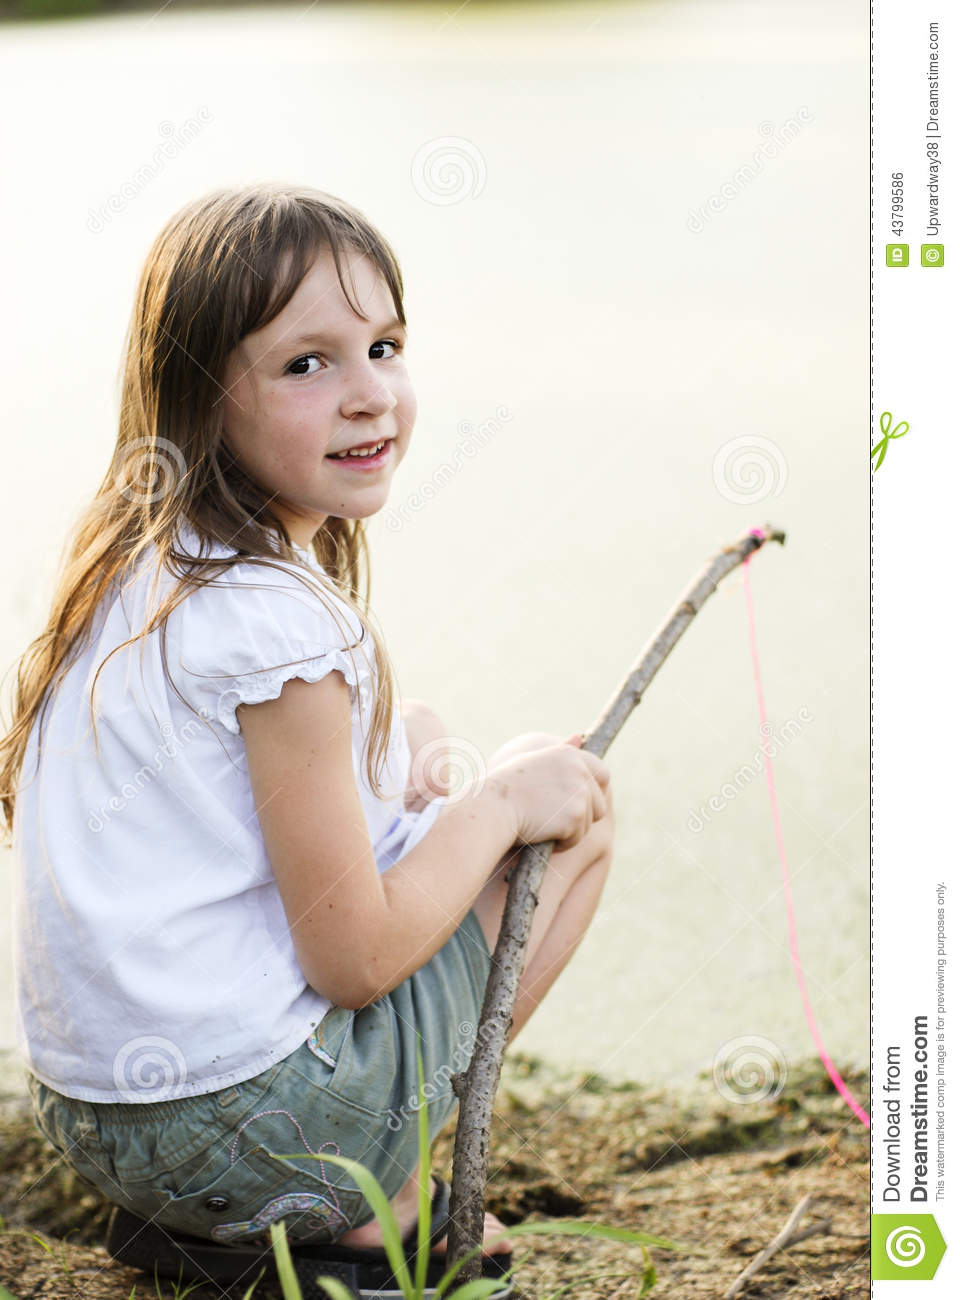 Girl fishing with a stick and line stock photo image of for Girl fishing pole